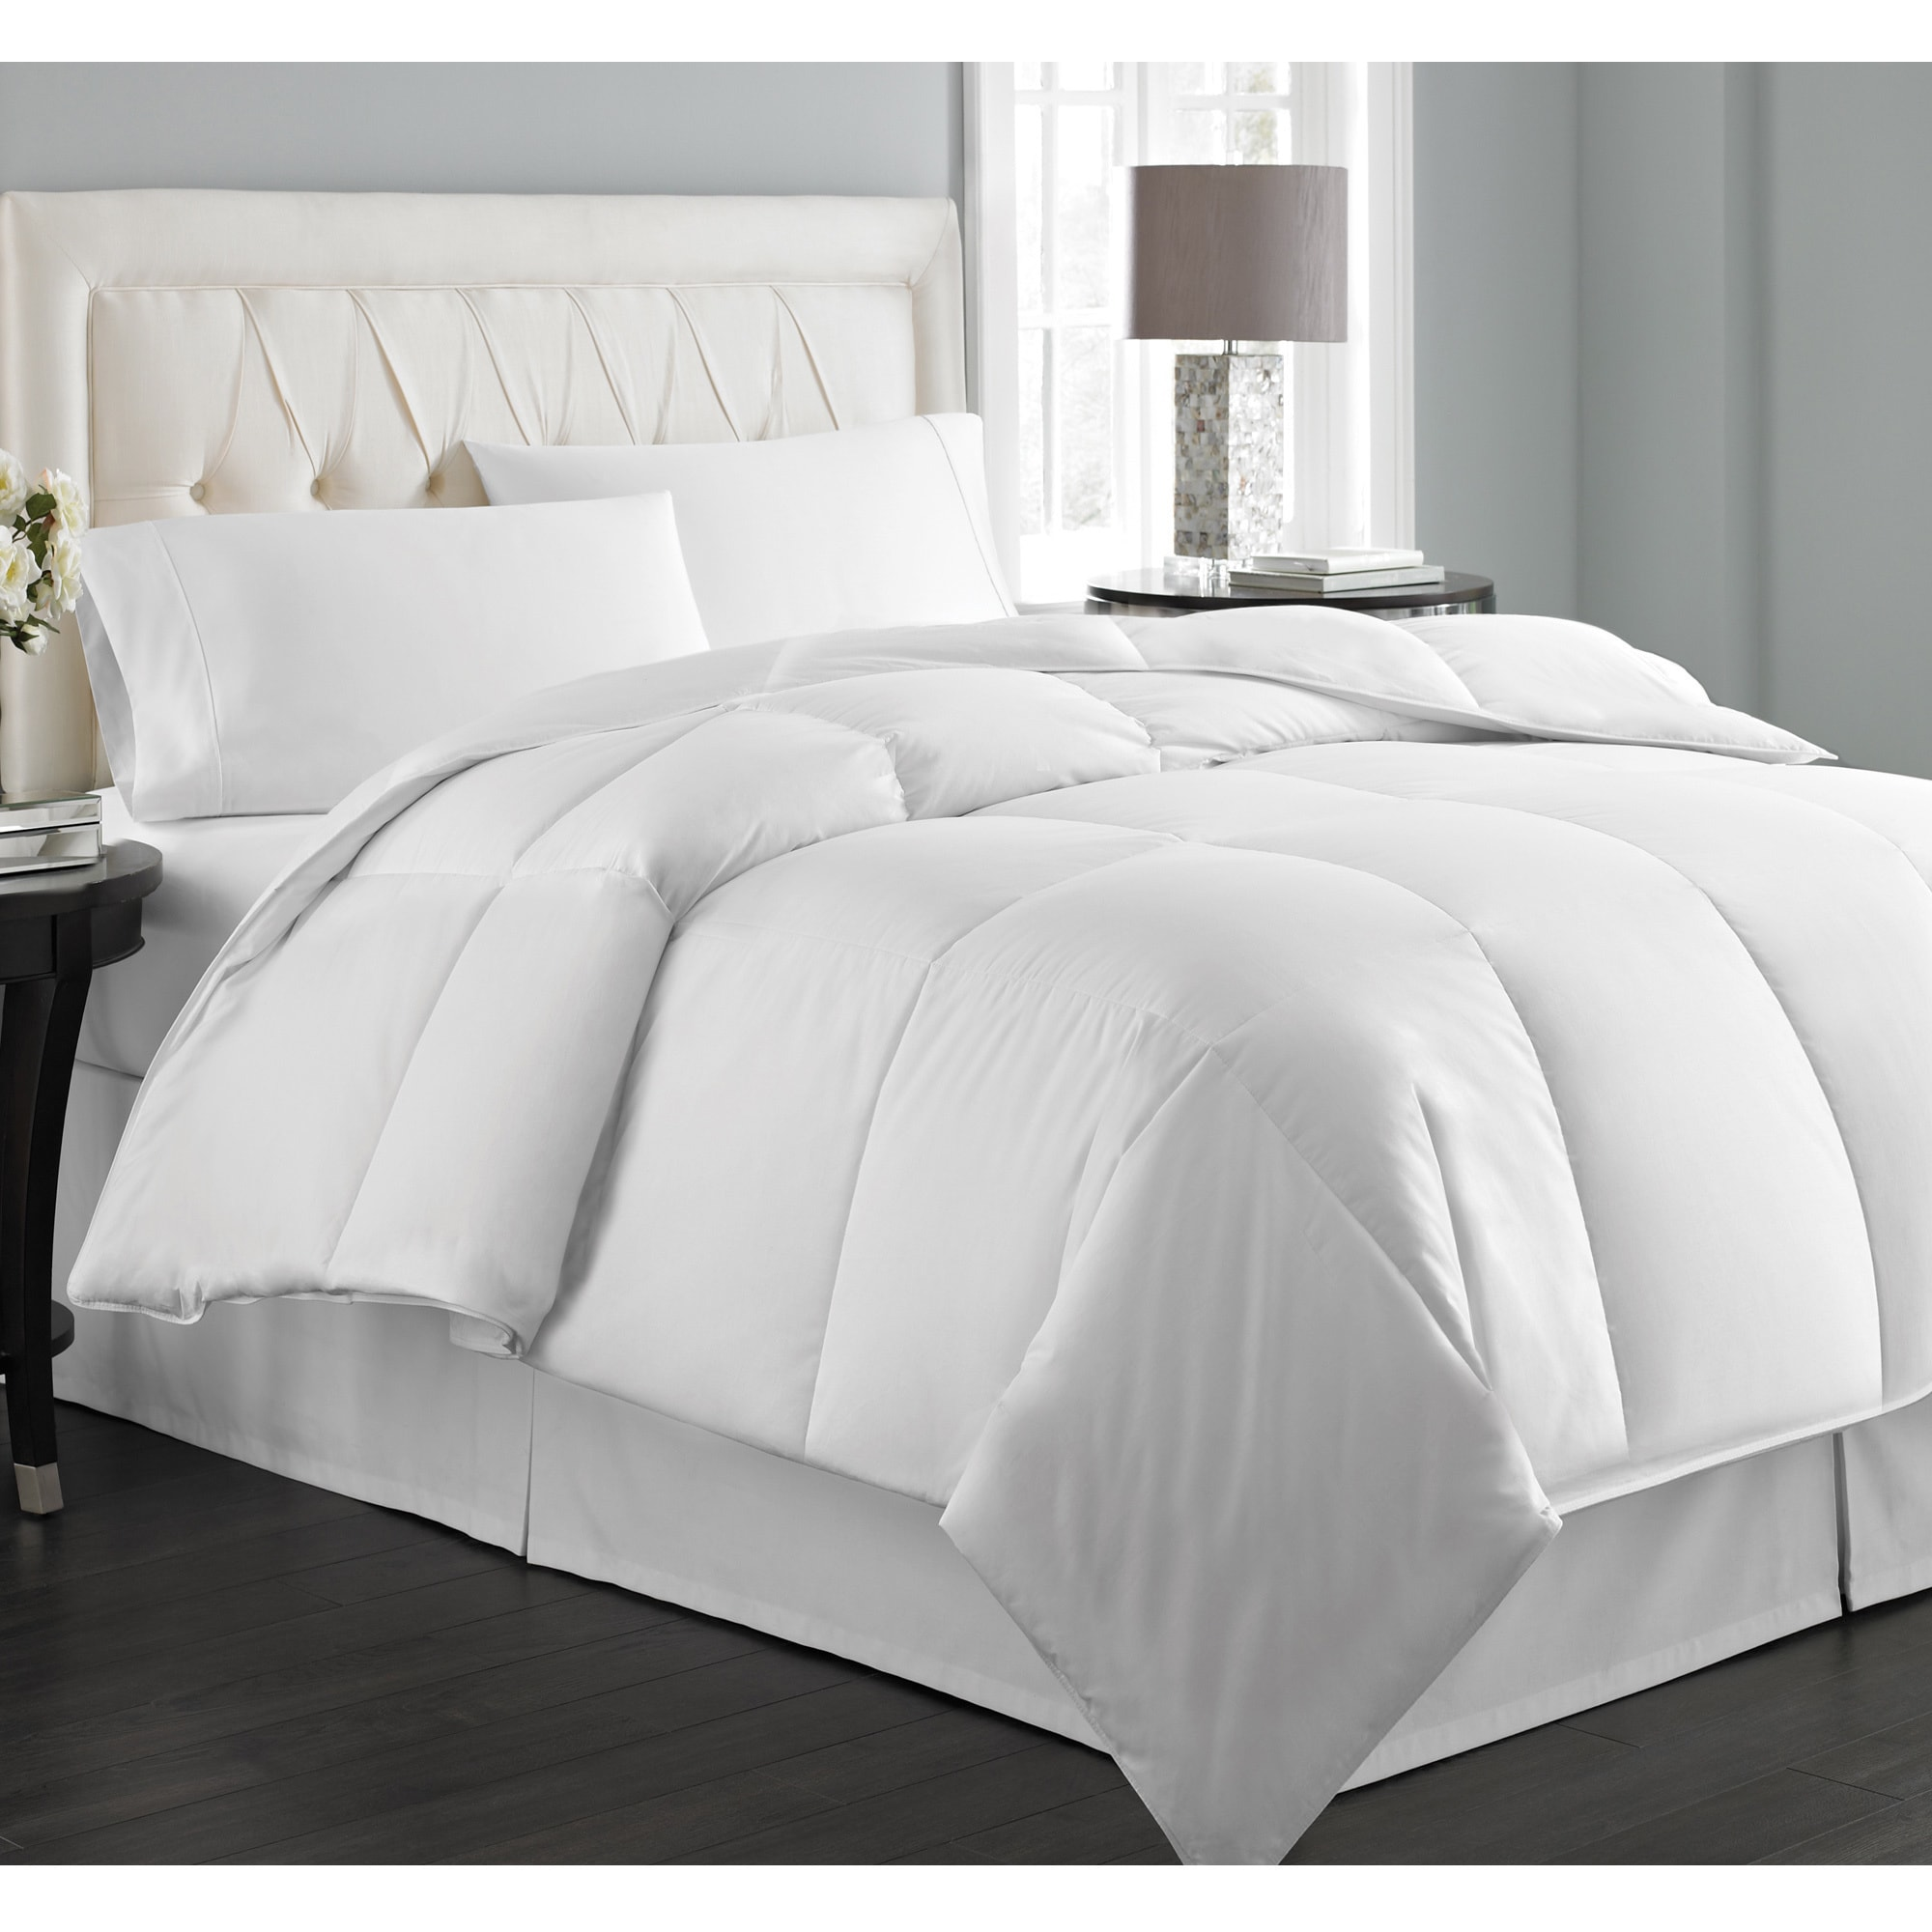 Shop all season supreme cotton down alternative comforter on sale free shipping today overstock com 1483149